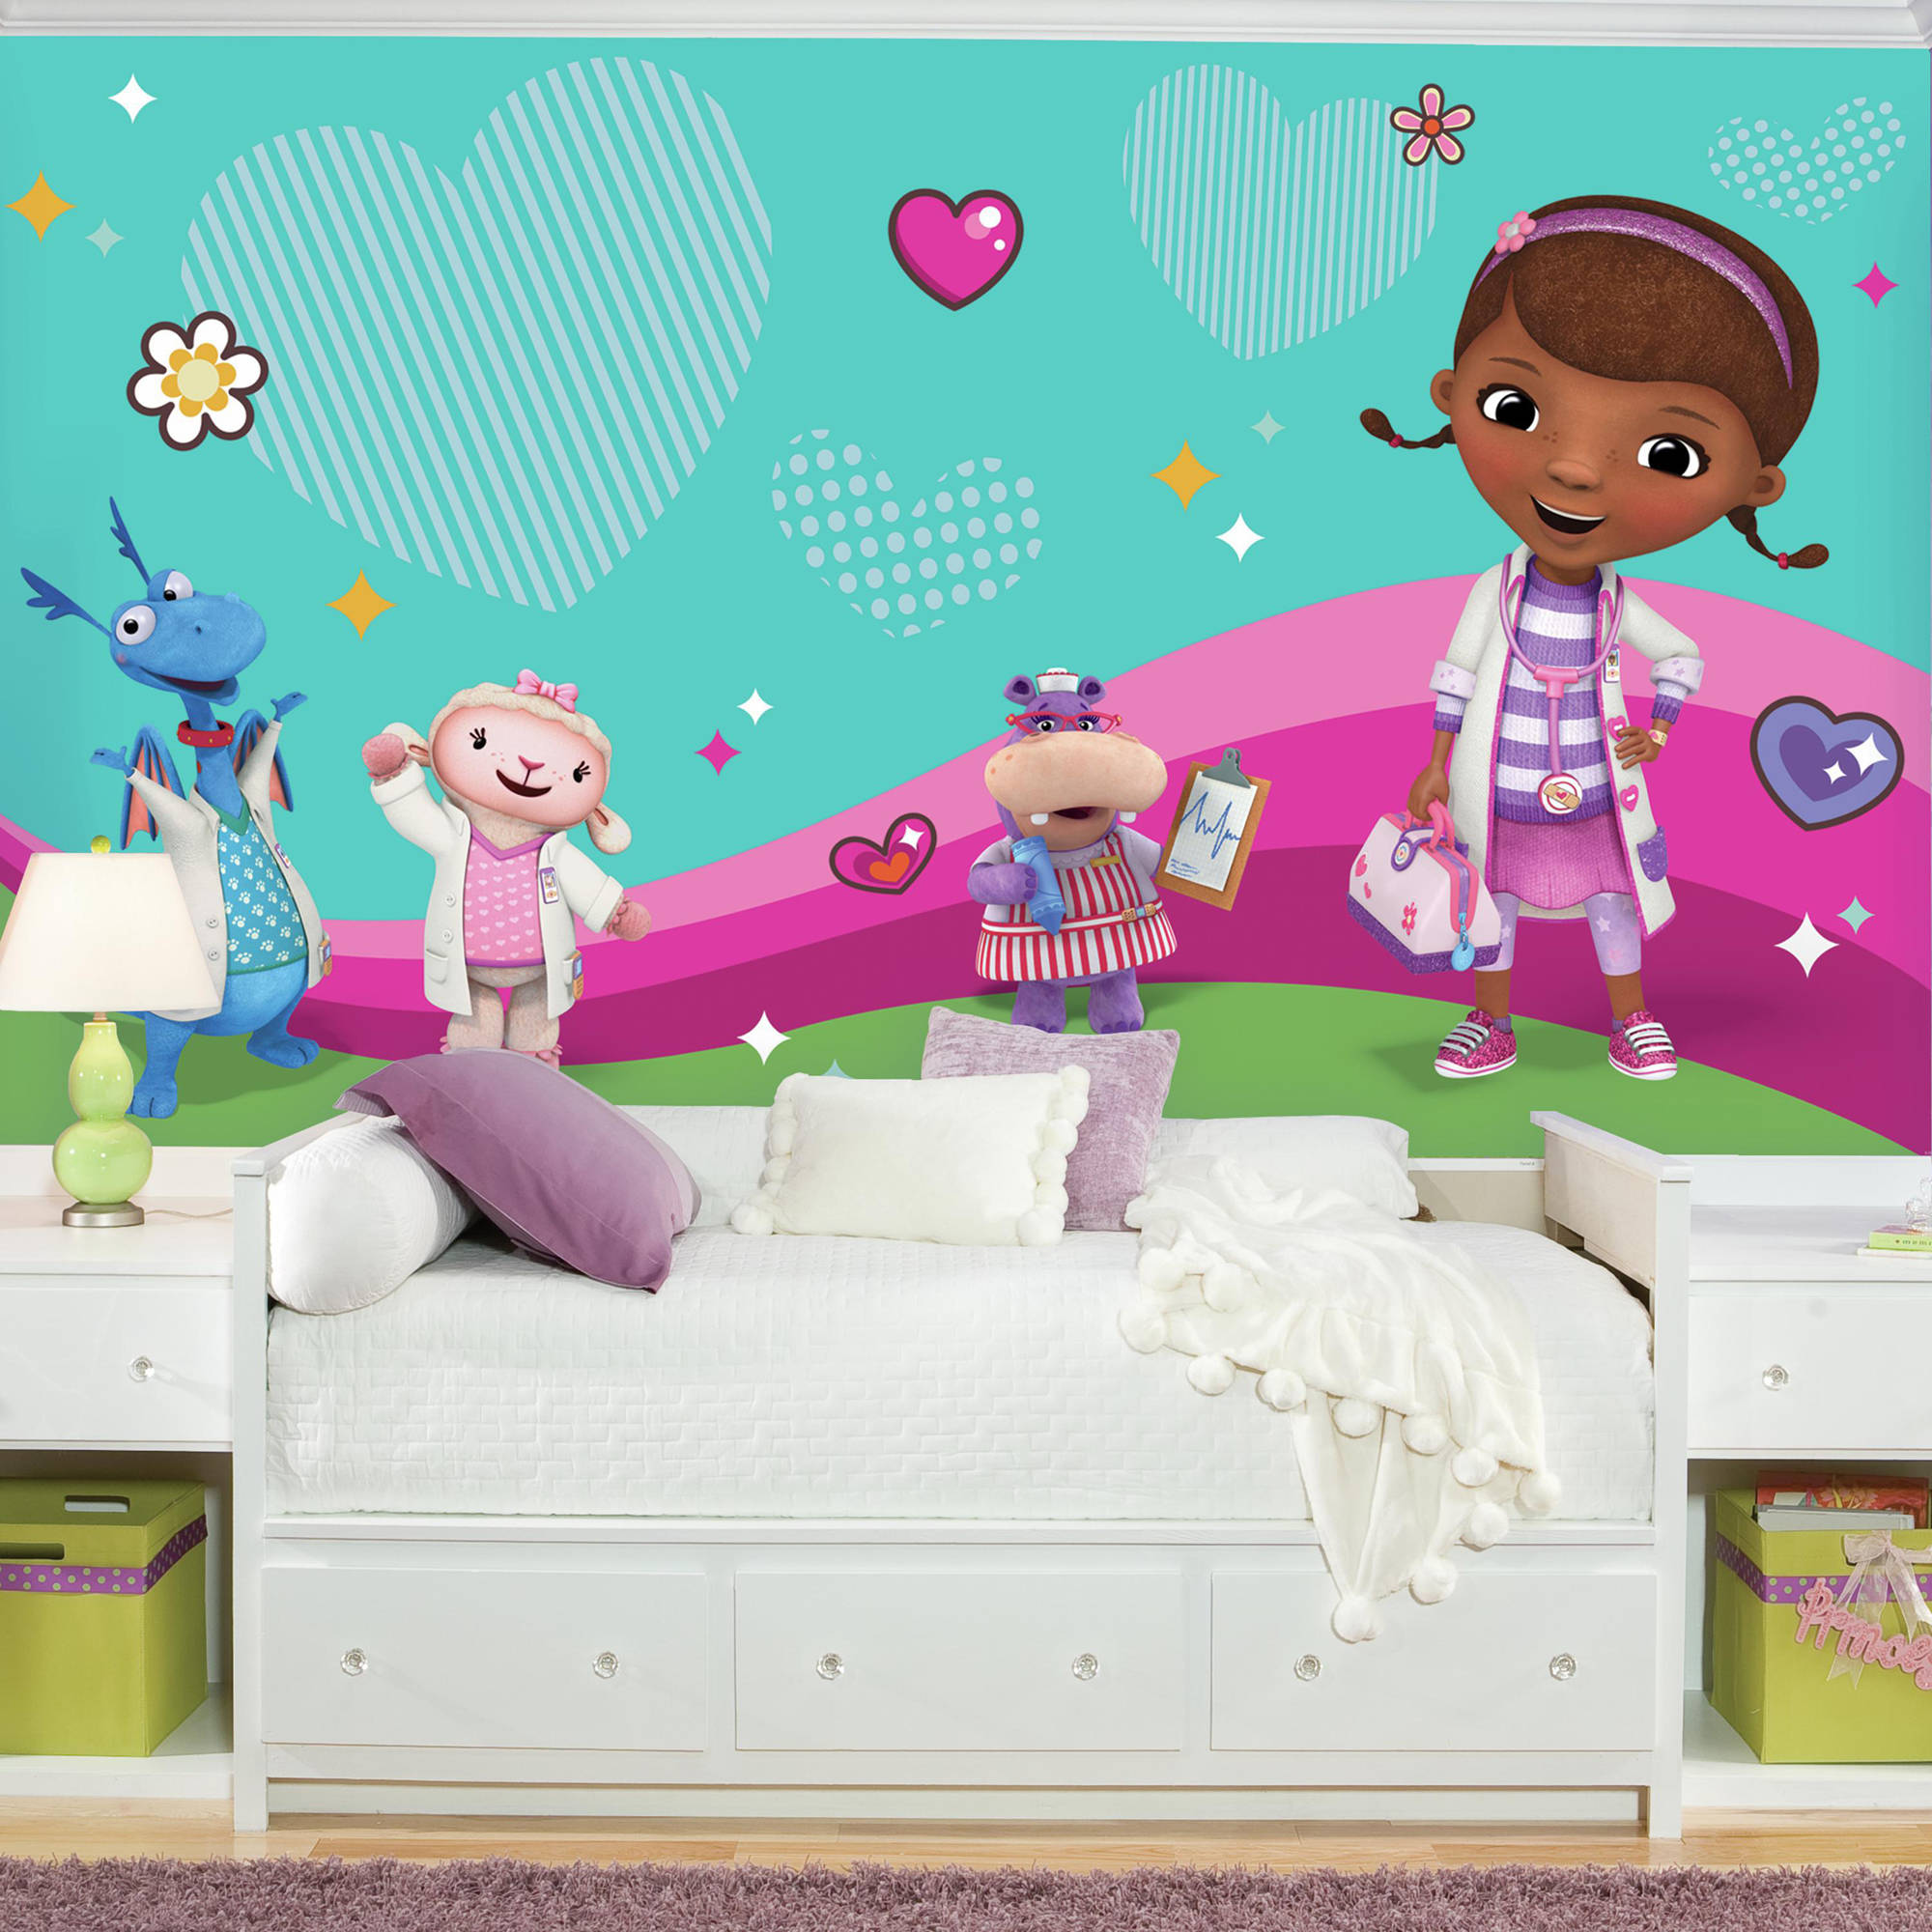 RoomMates Doc Mcstuffins and Friends XL Chair Rail Prepasted Mural, 6' x 10.5', Ultra-Strippable